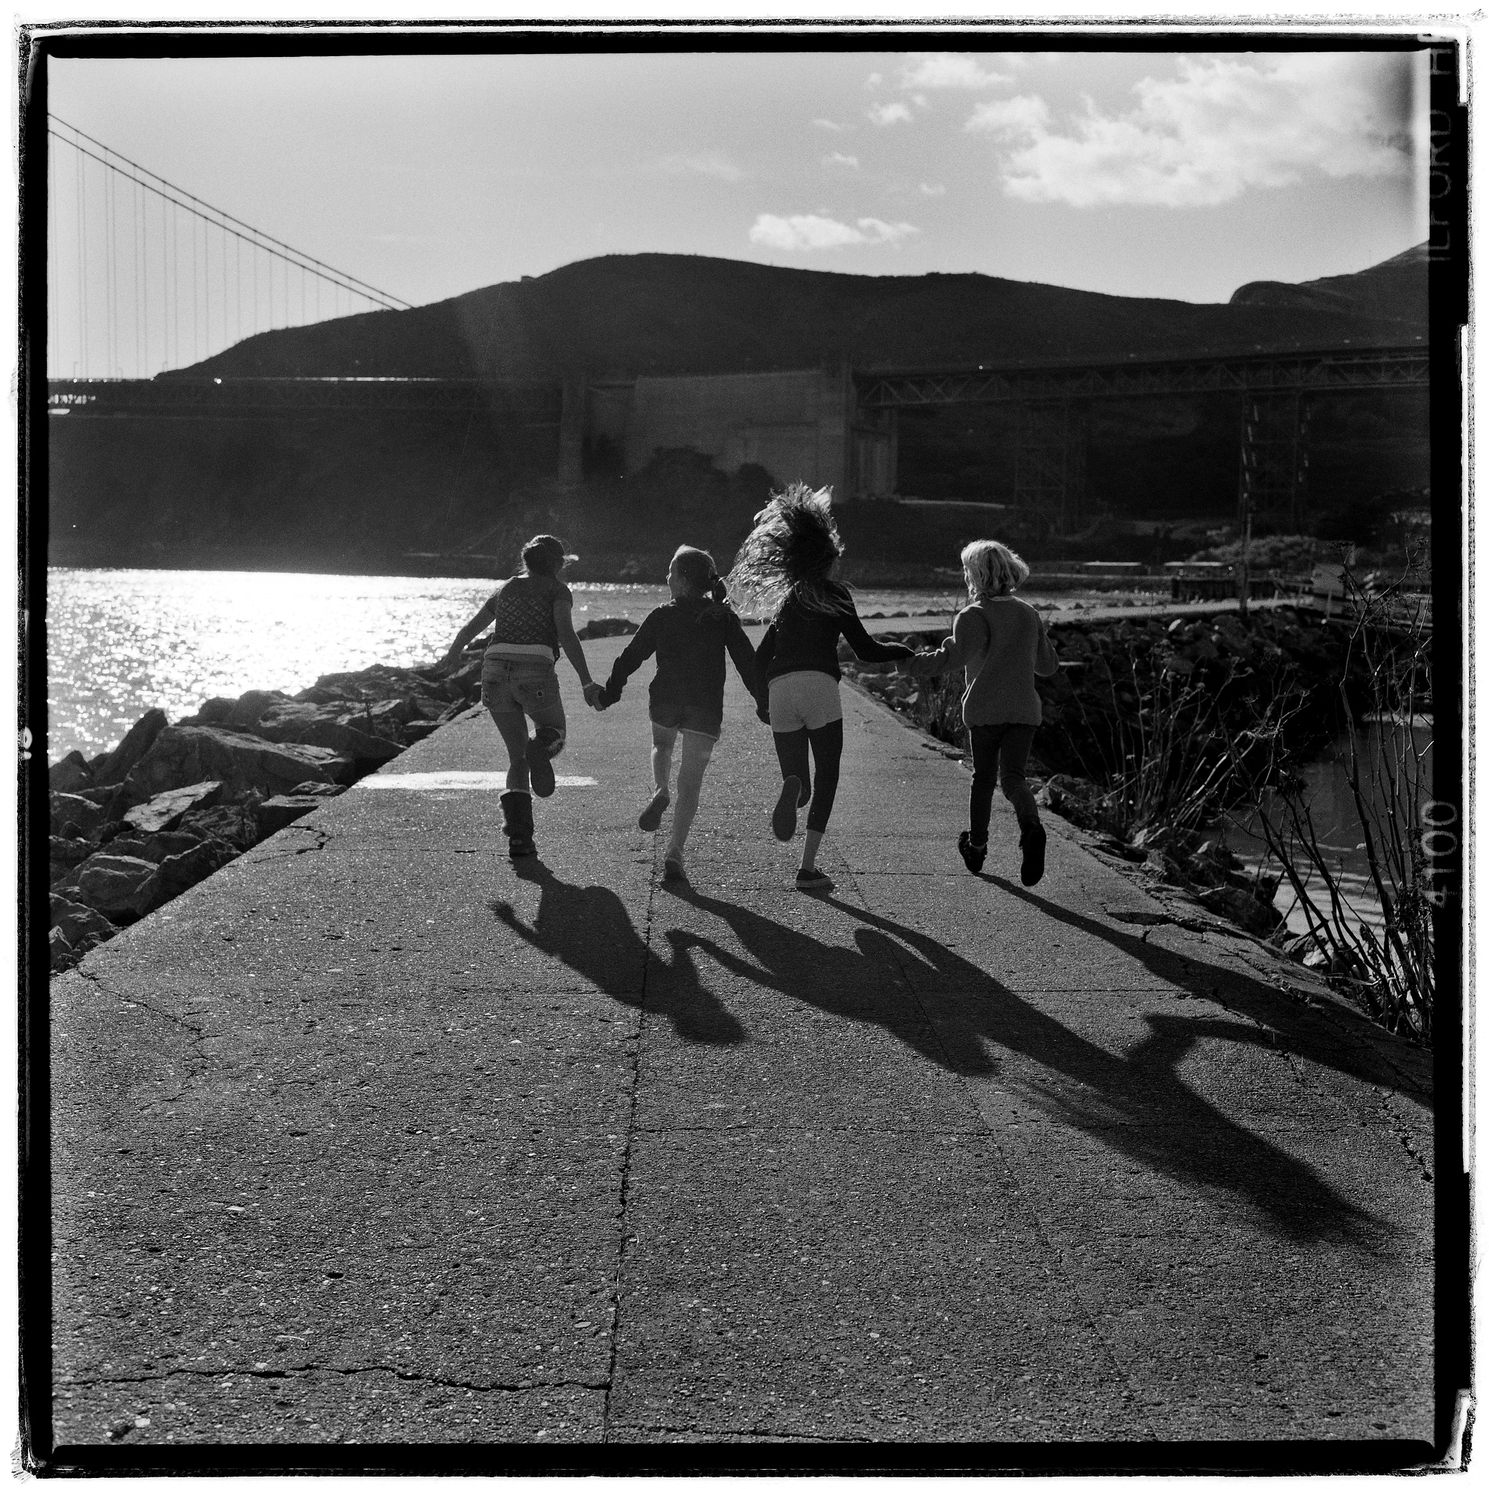 Friends - Cavallo point, Sausalito, CA